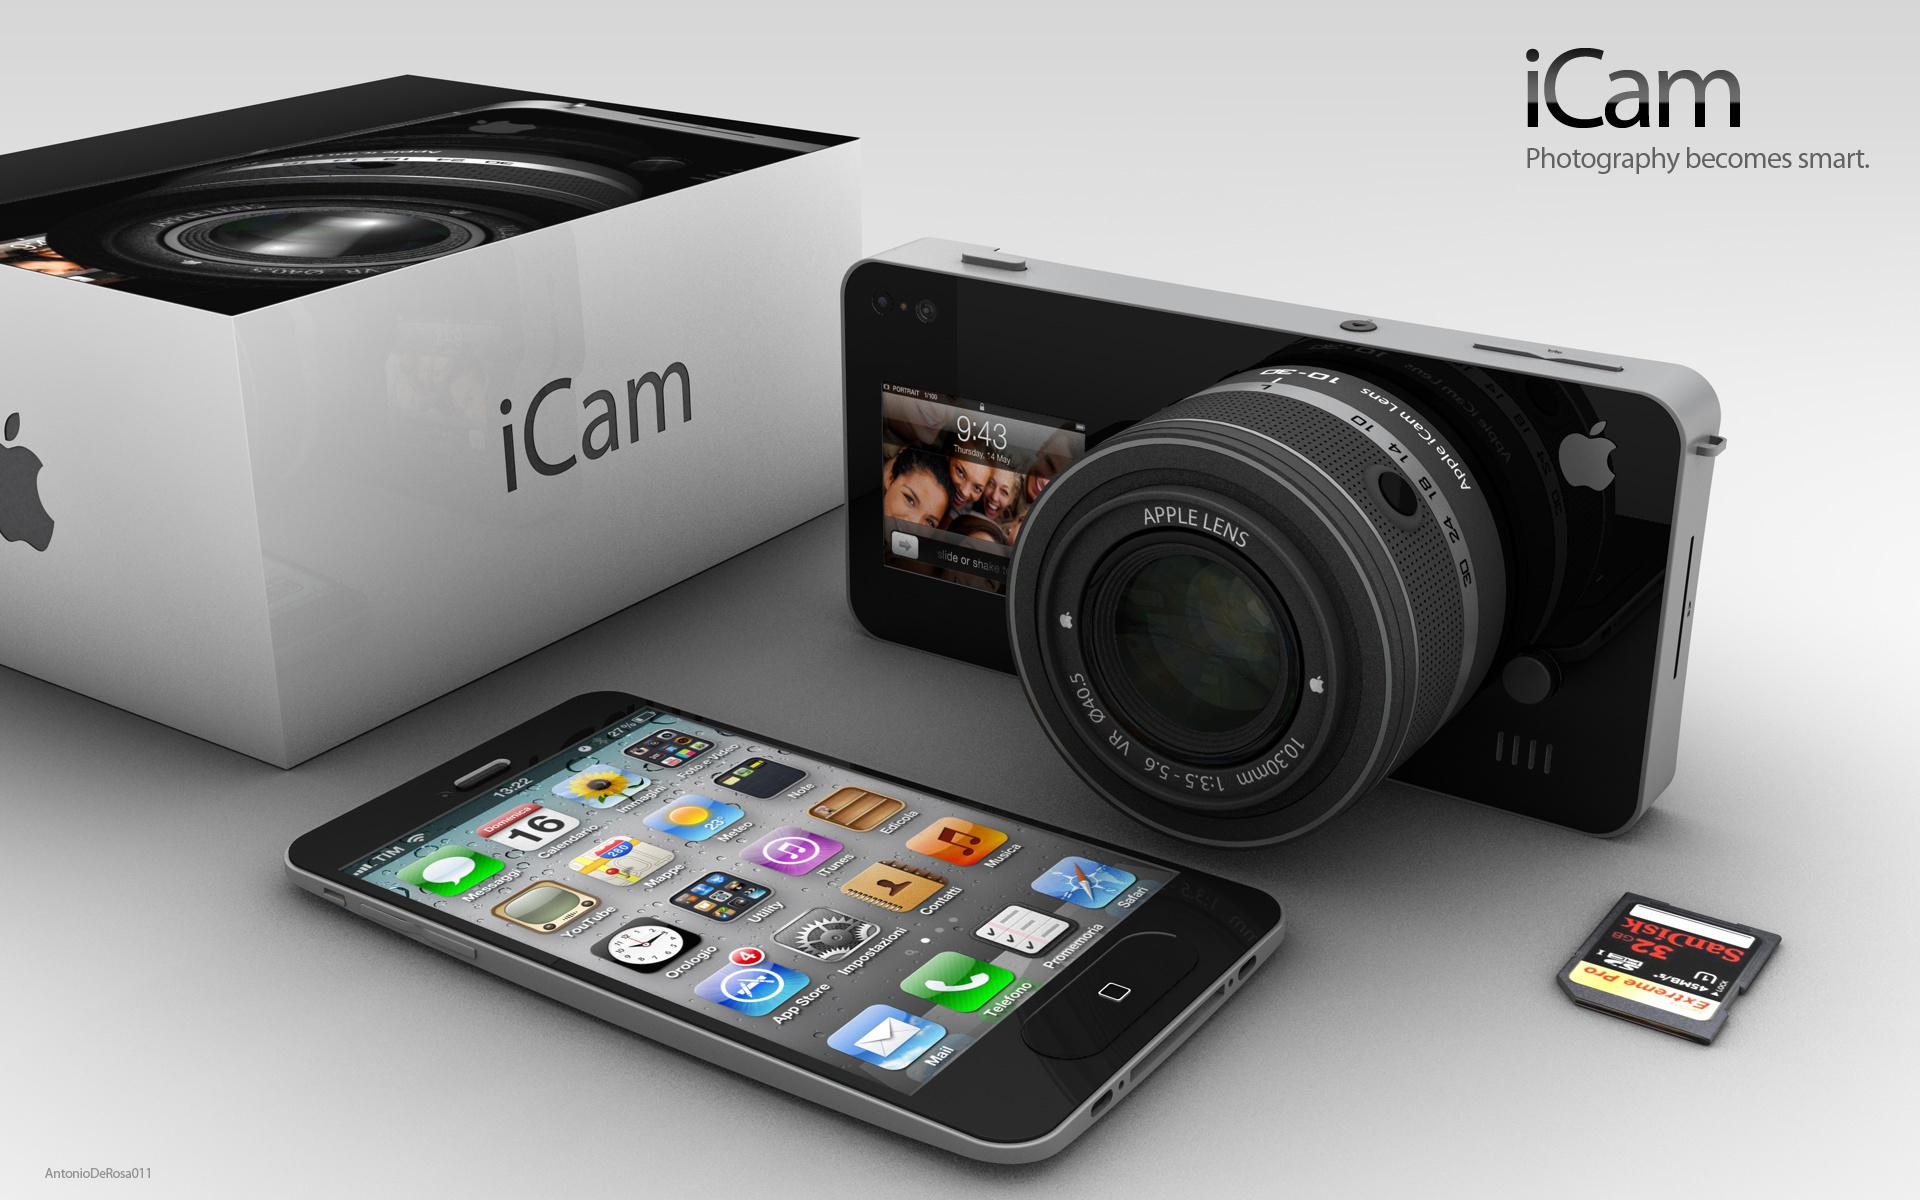 iCam_Packaging_05.jpg (1920×1200)